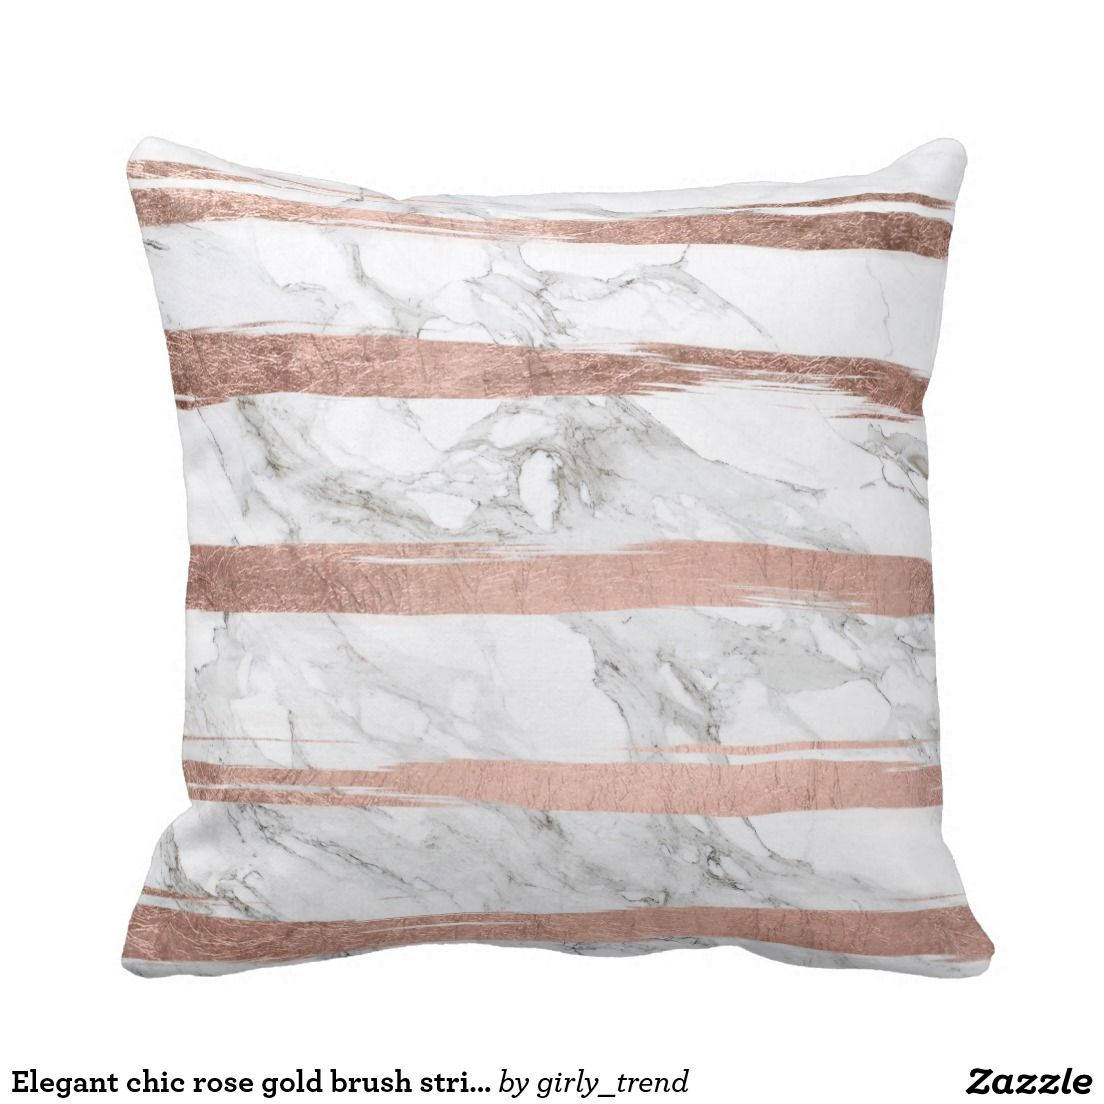 Buy marble rose gold silver and floral geo triangles rectangular - Elegant Chic Rose Gold Brush Stripes White Marble Throw Pillow